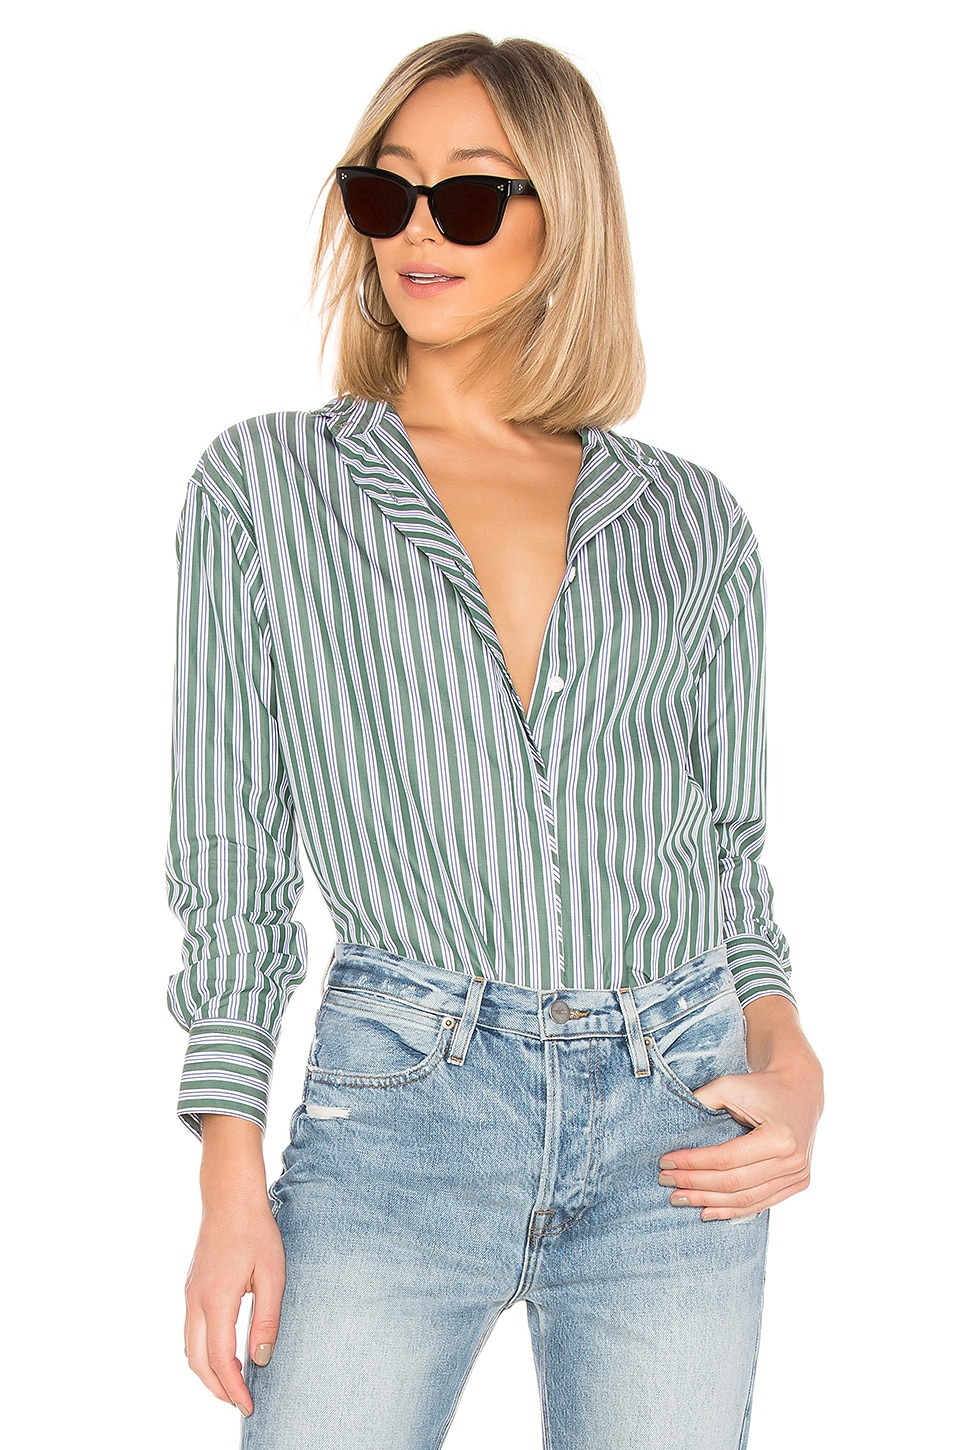 Rag & Bone Audrey Shirt in Green Stripe